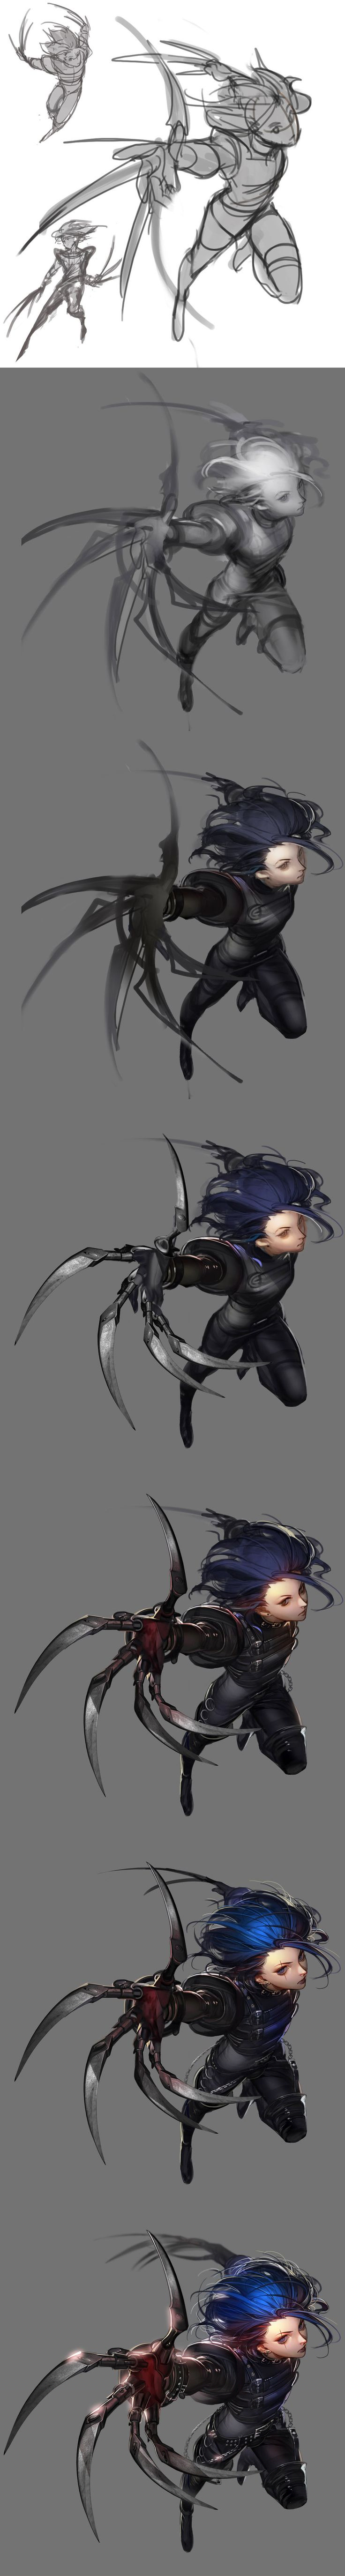 ArtStation - Edward Scissorhands, li duke